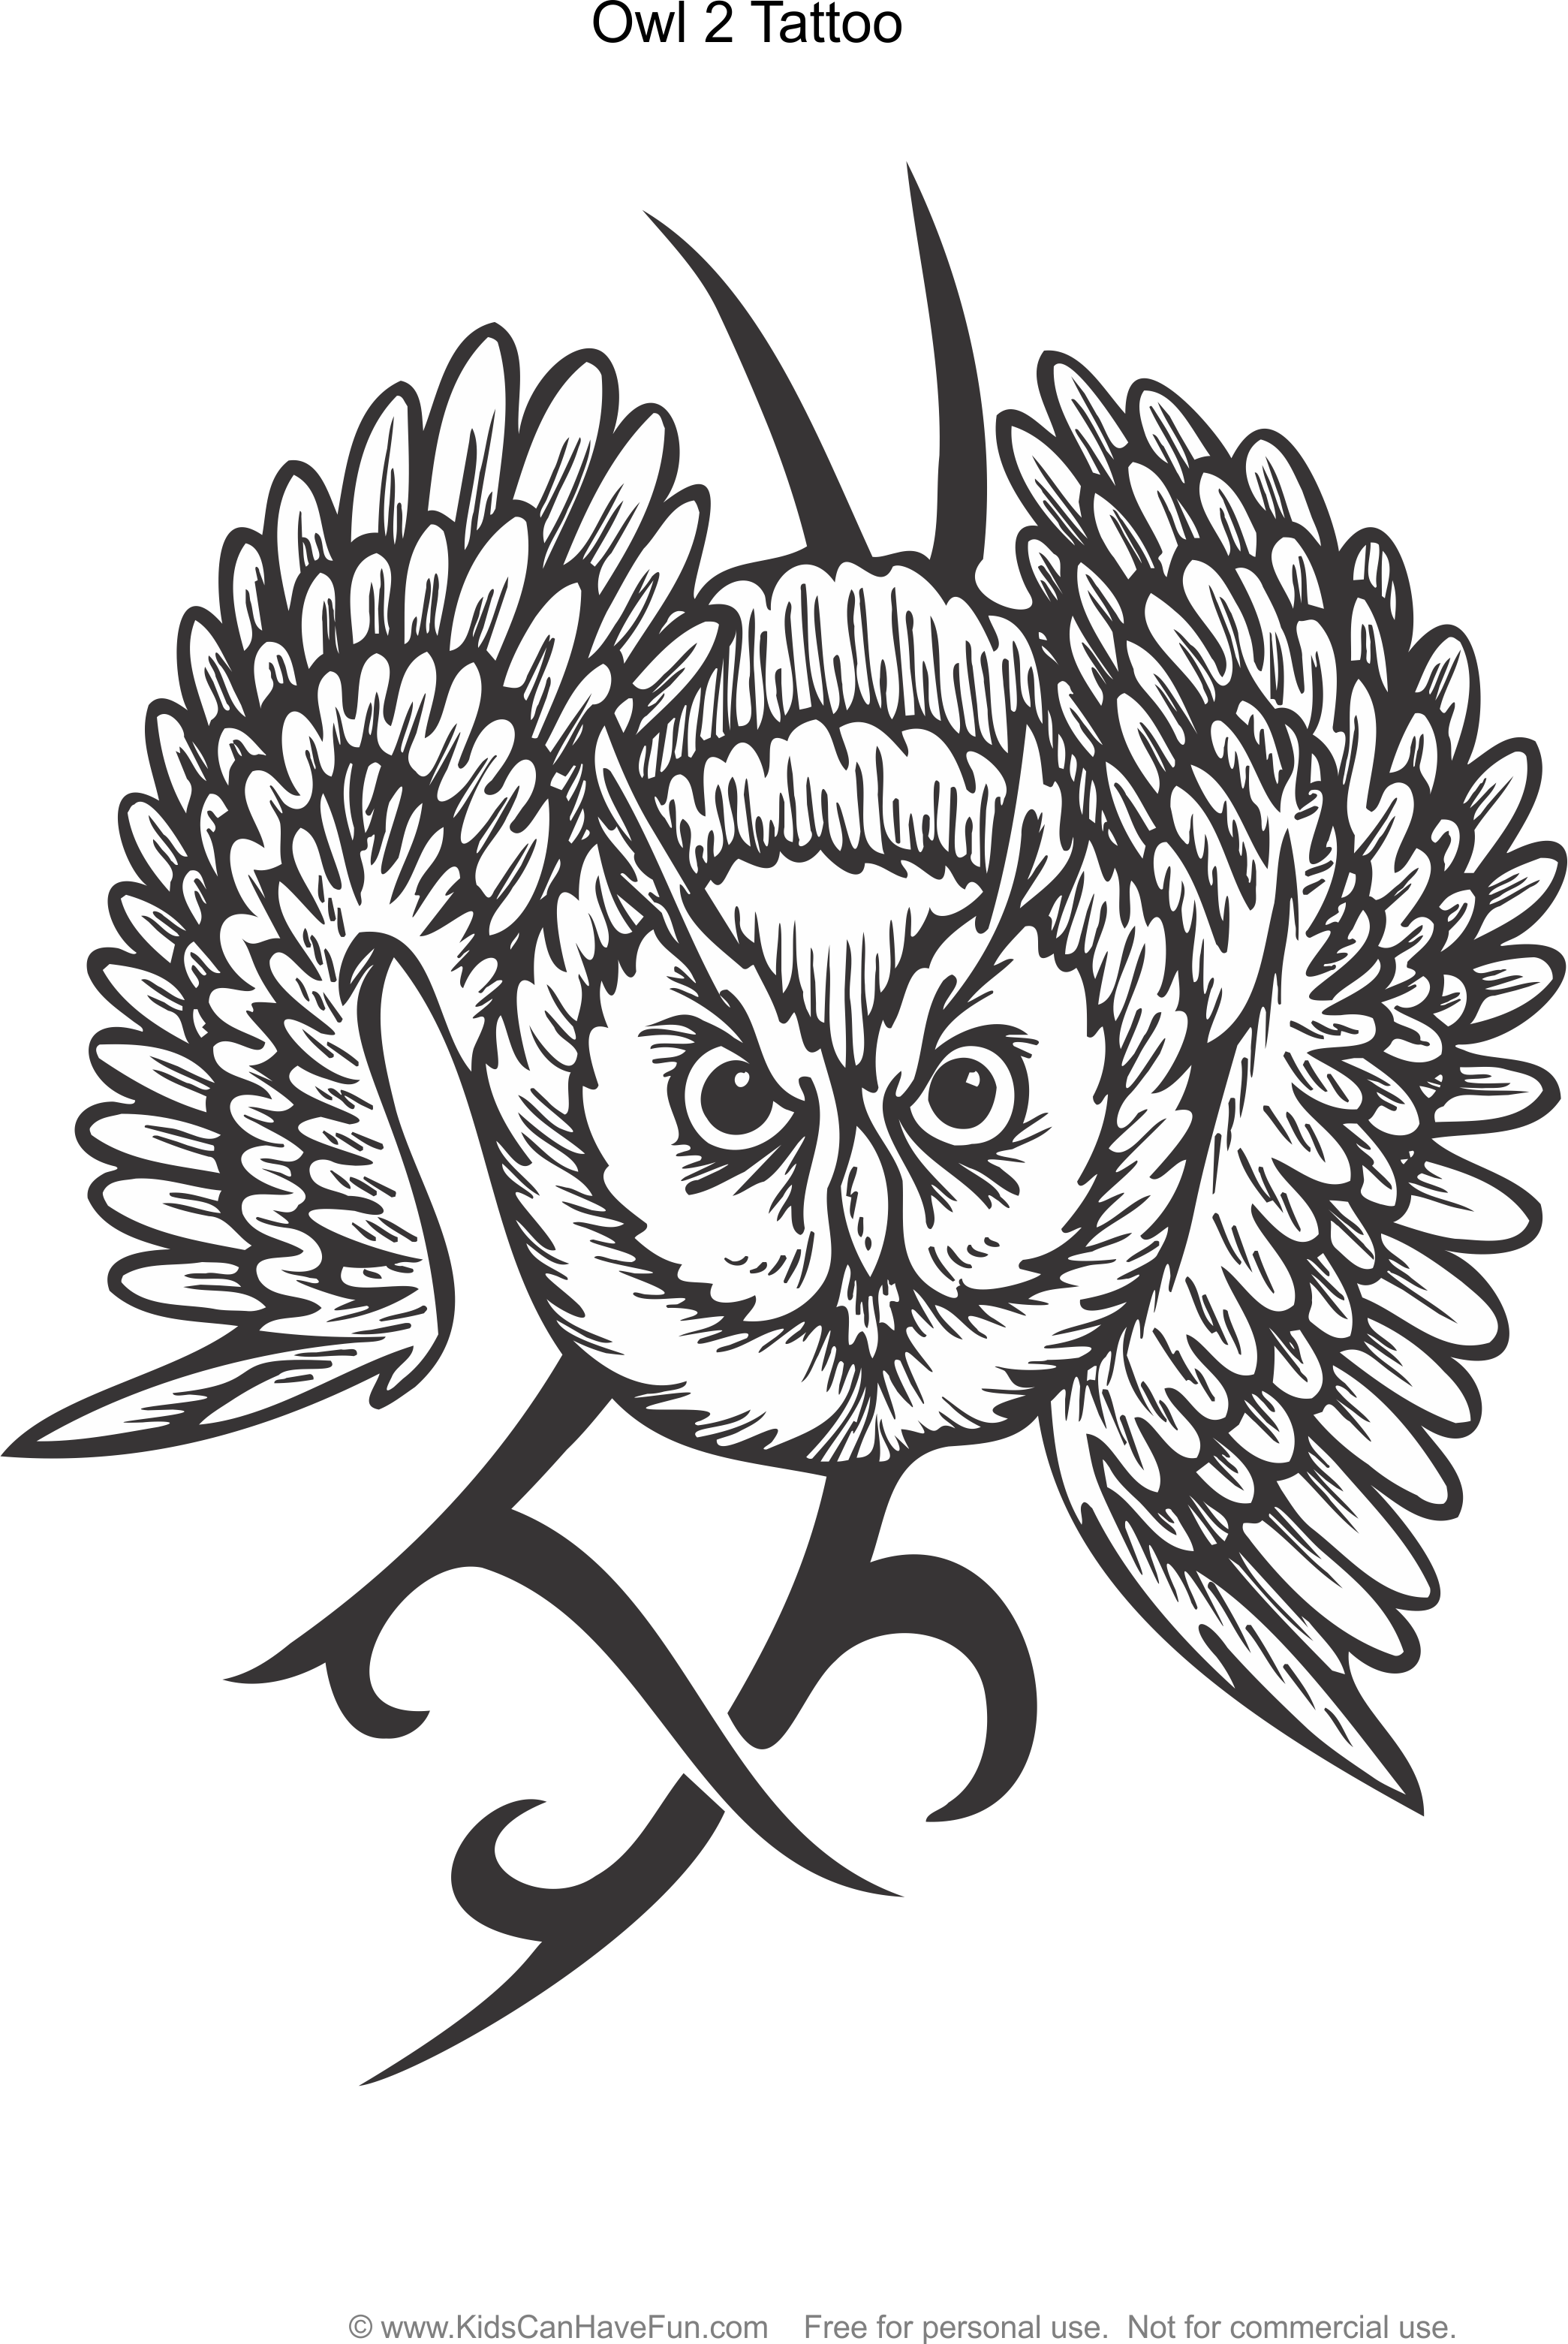 Tattoo designs coloring book - Owl 2 Tattoo Design Coloring Page Http Www Kidscanhavefun Com